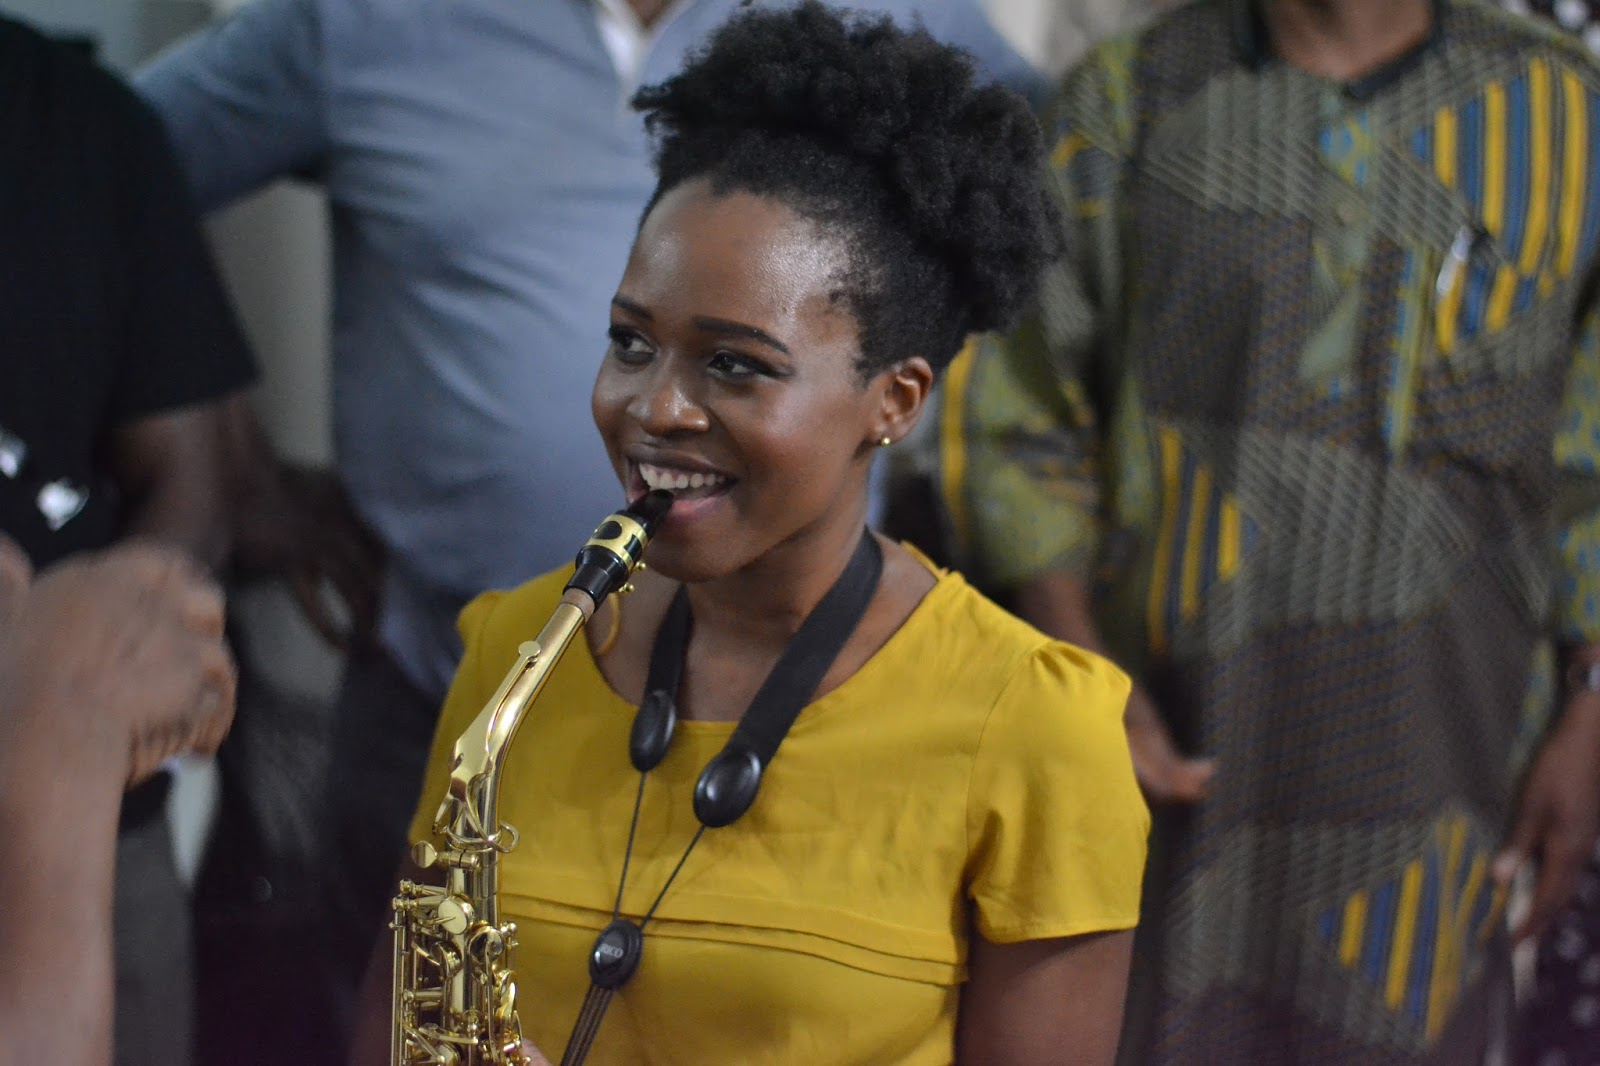 Female saxophonist in nigeria